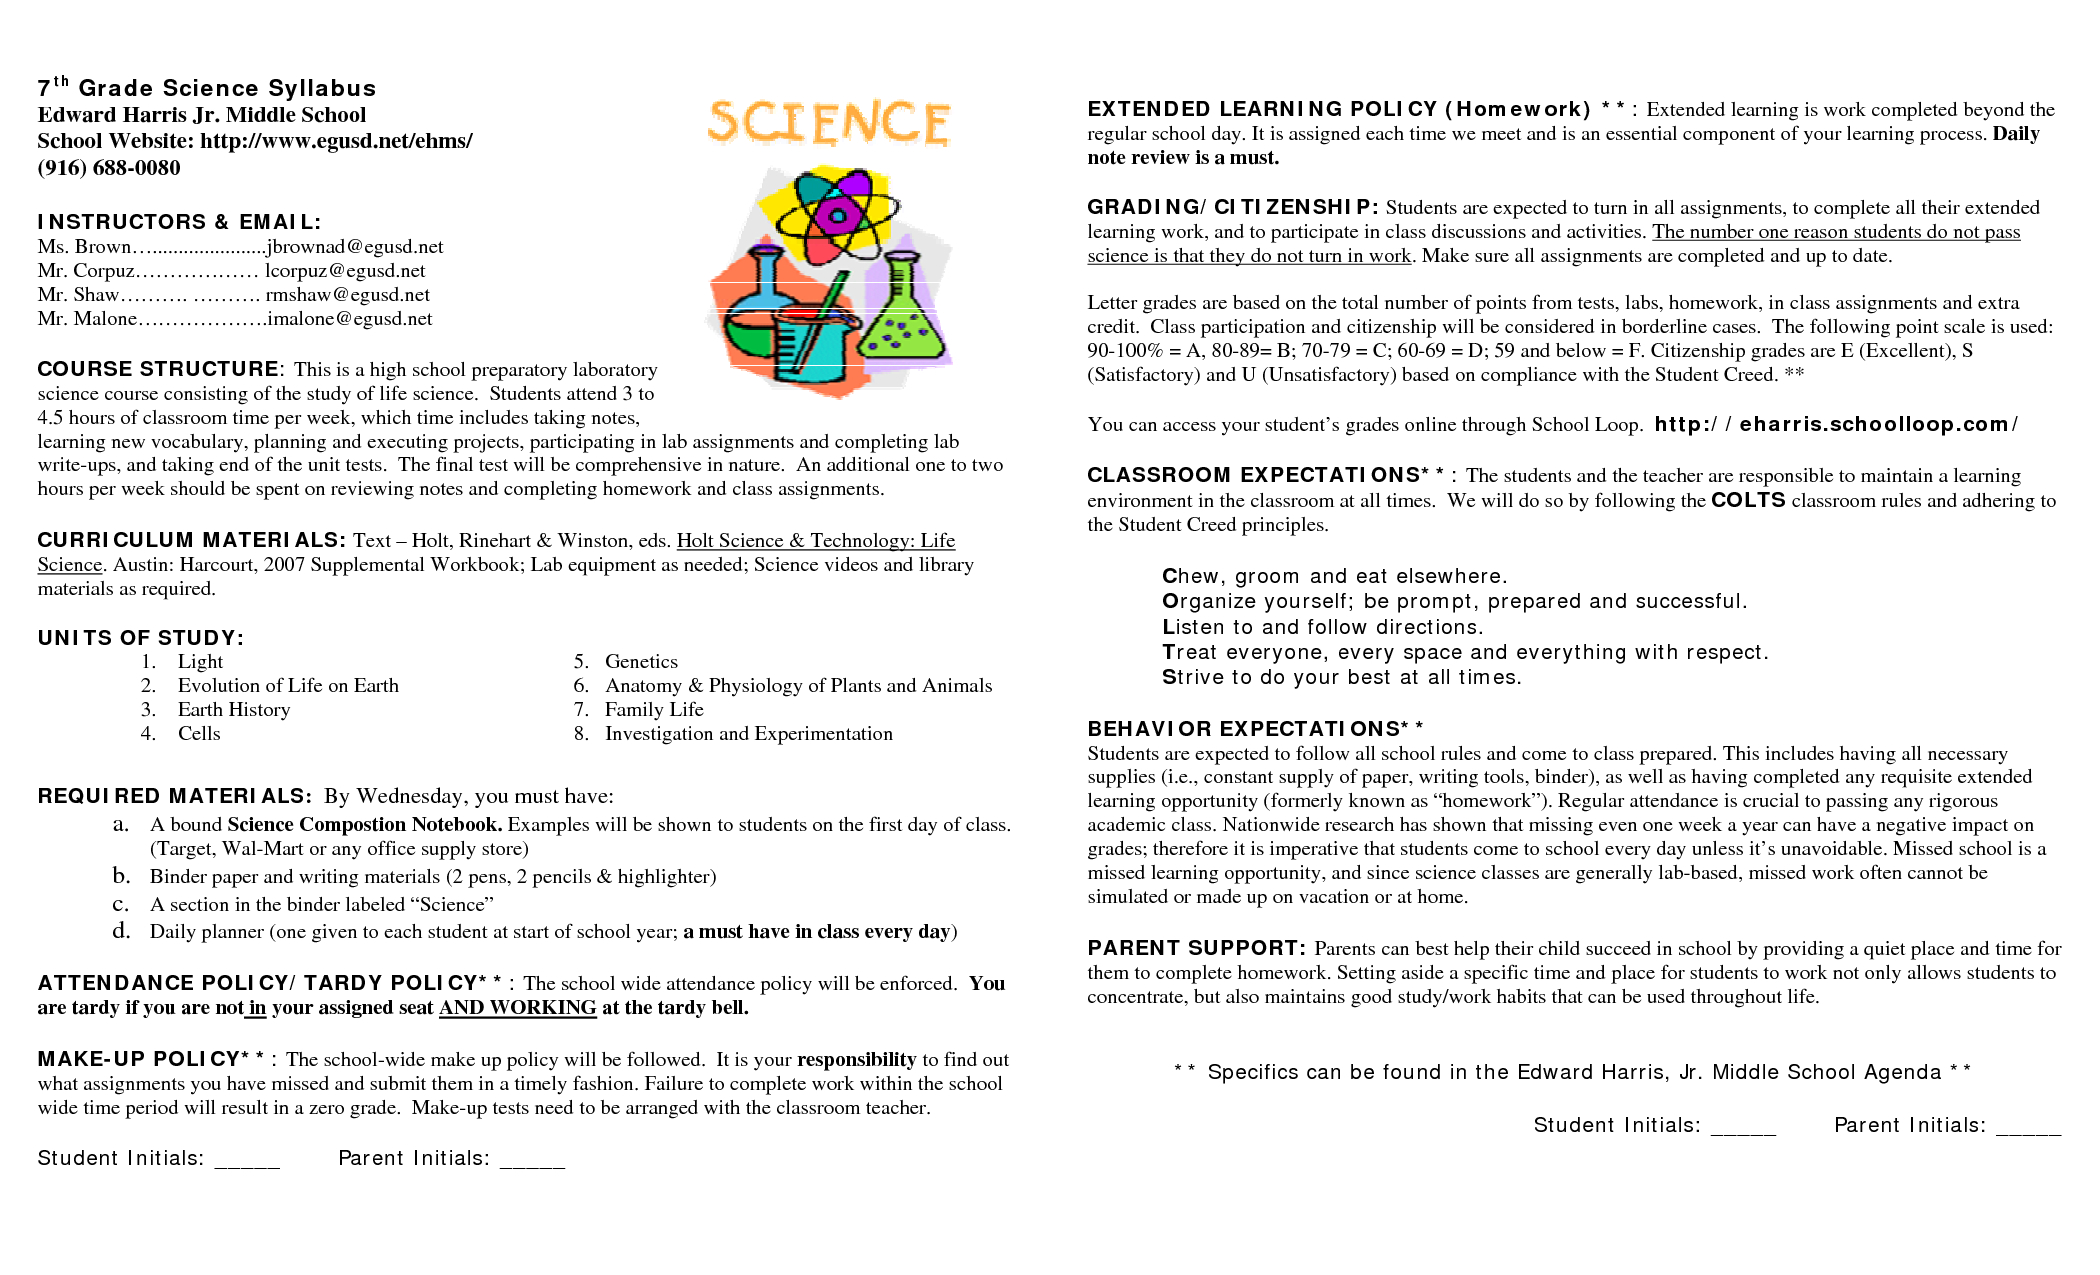 15 Awesome Syllabus Template For Middle School Images … | Syllabus intended for Homework Agenda Template 7Th Grade